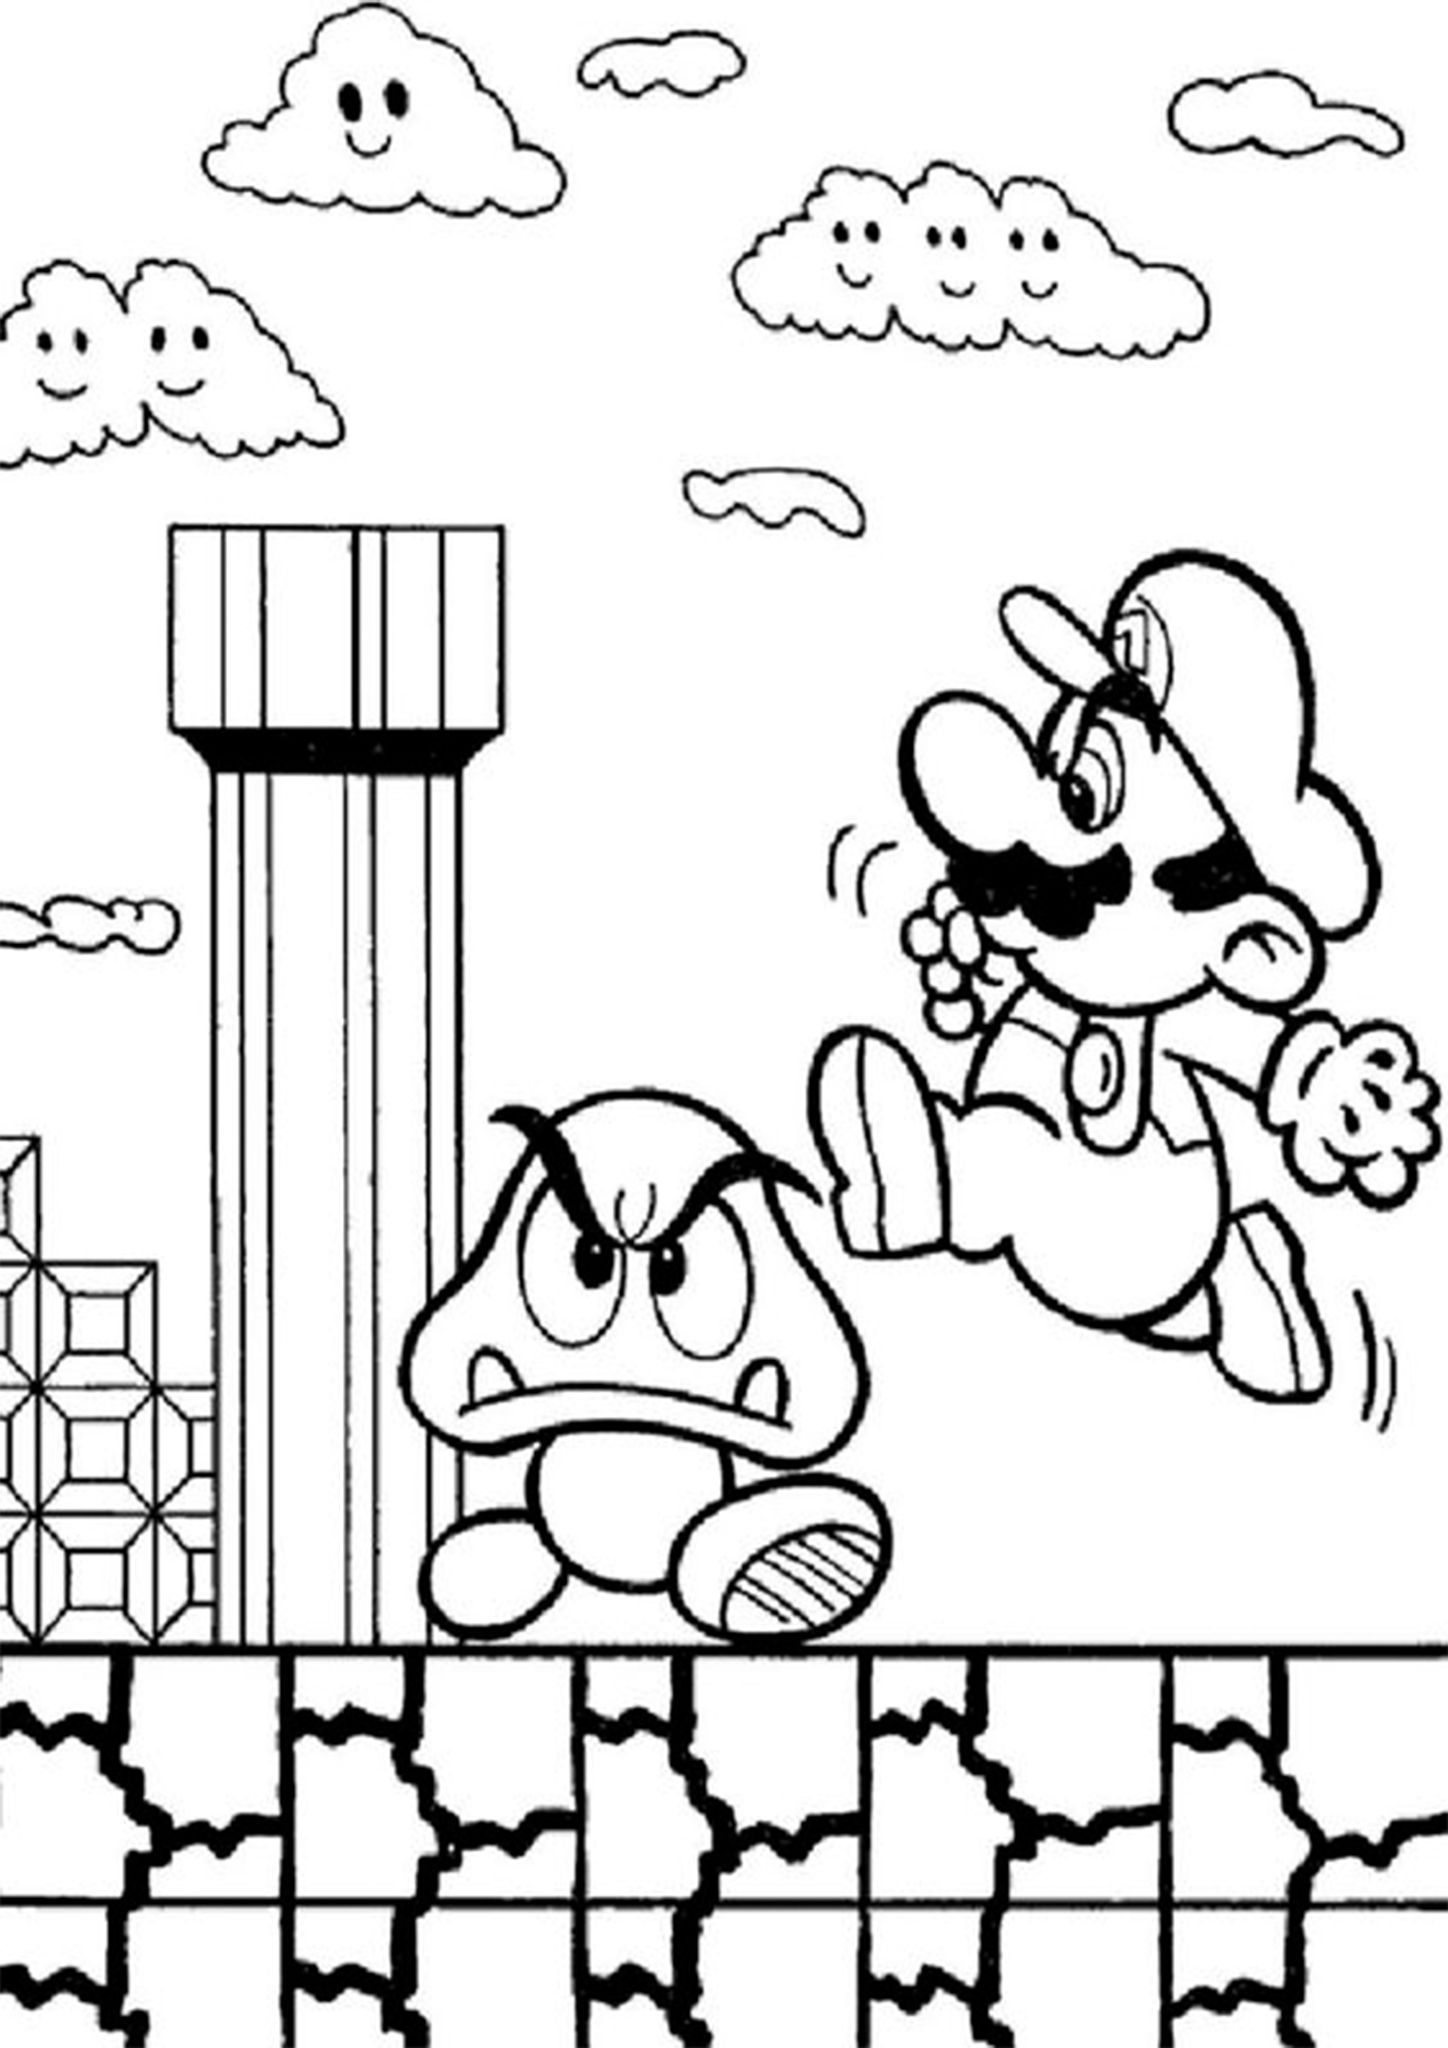 Free Easy To Print Mario Coloring Page Super Mario Coloring Pages Pokemon Coloring Pages Mario Coloring Pages